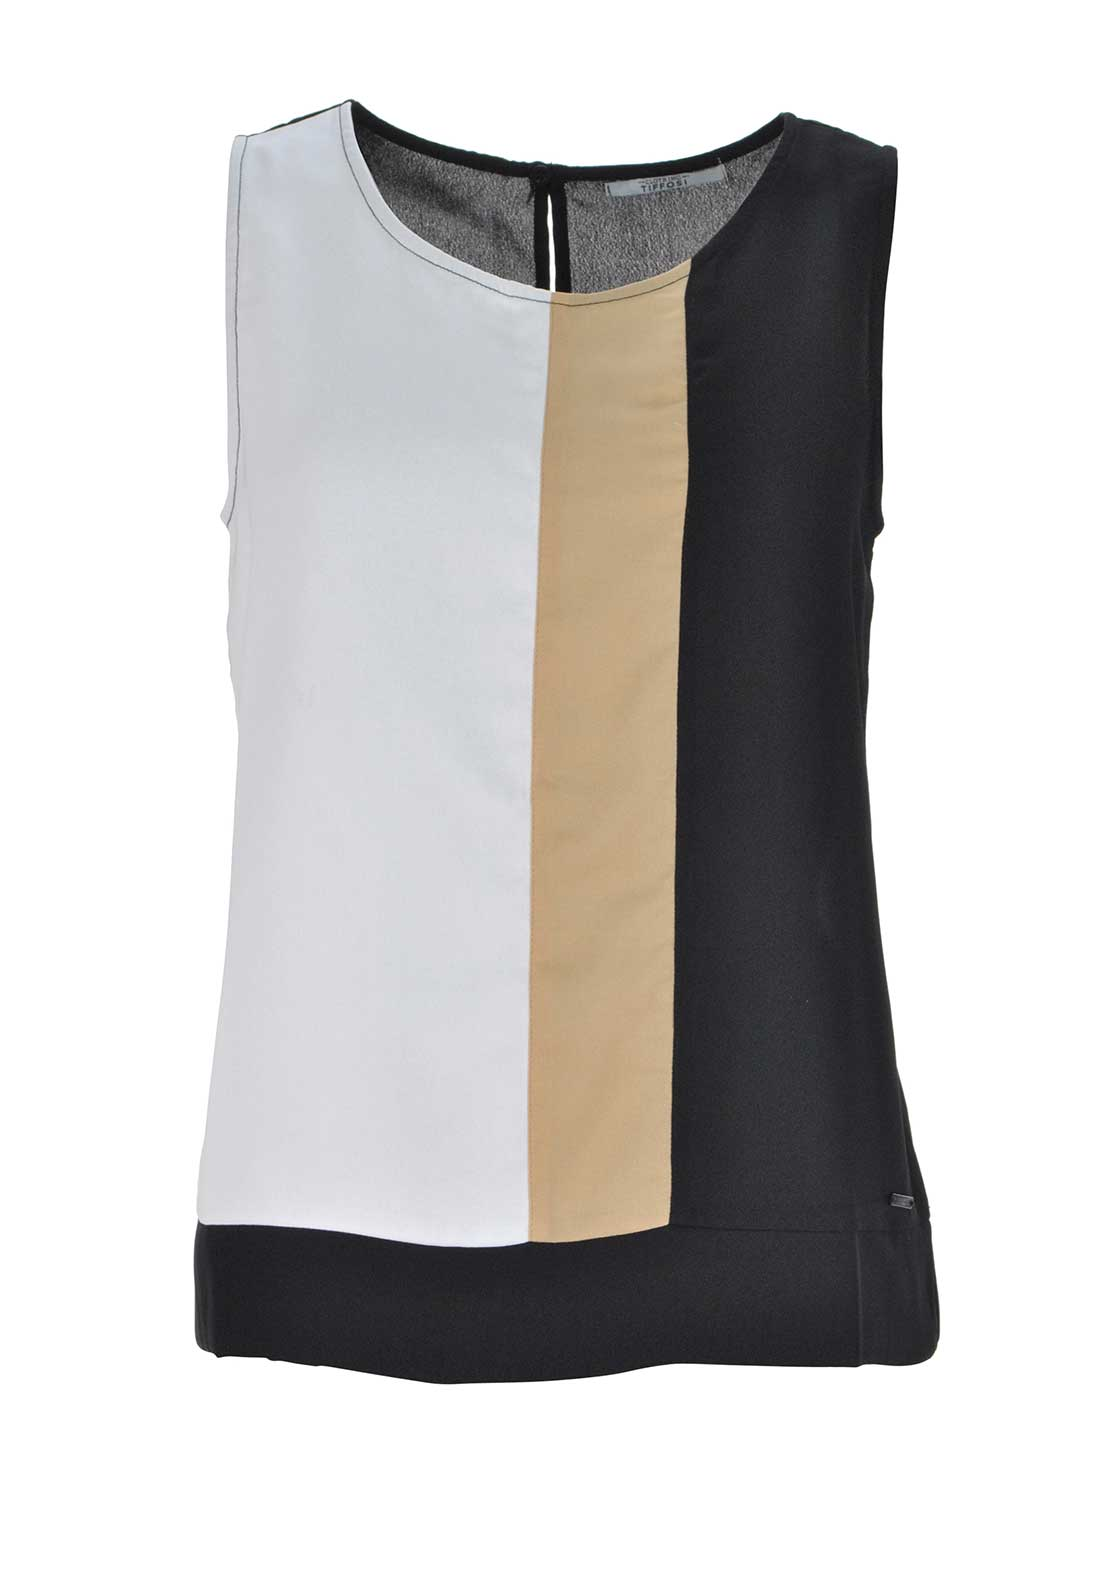 Tiffosi Womens Emirates Sleeveless Panel Top, Black